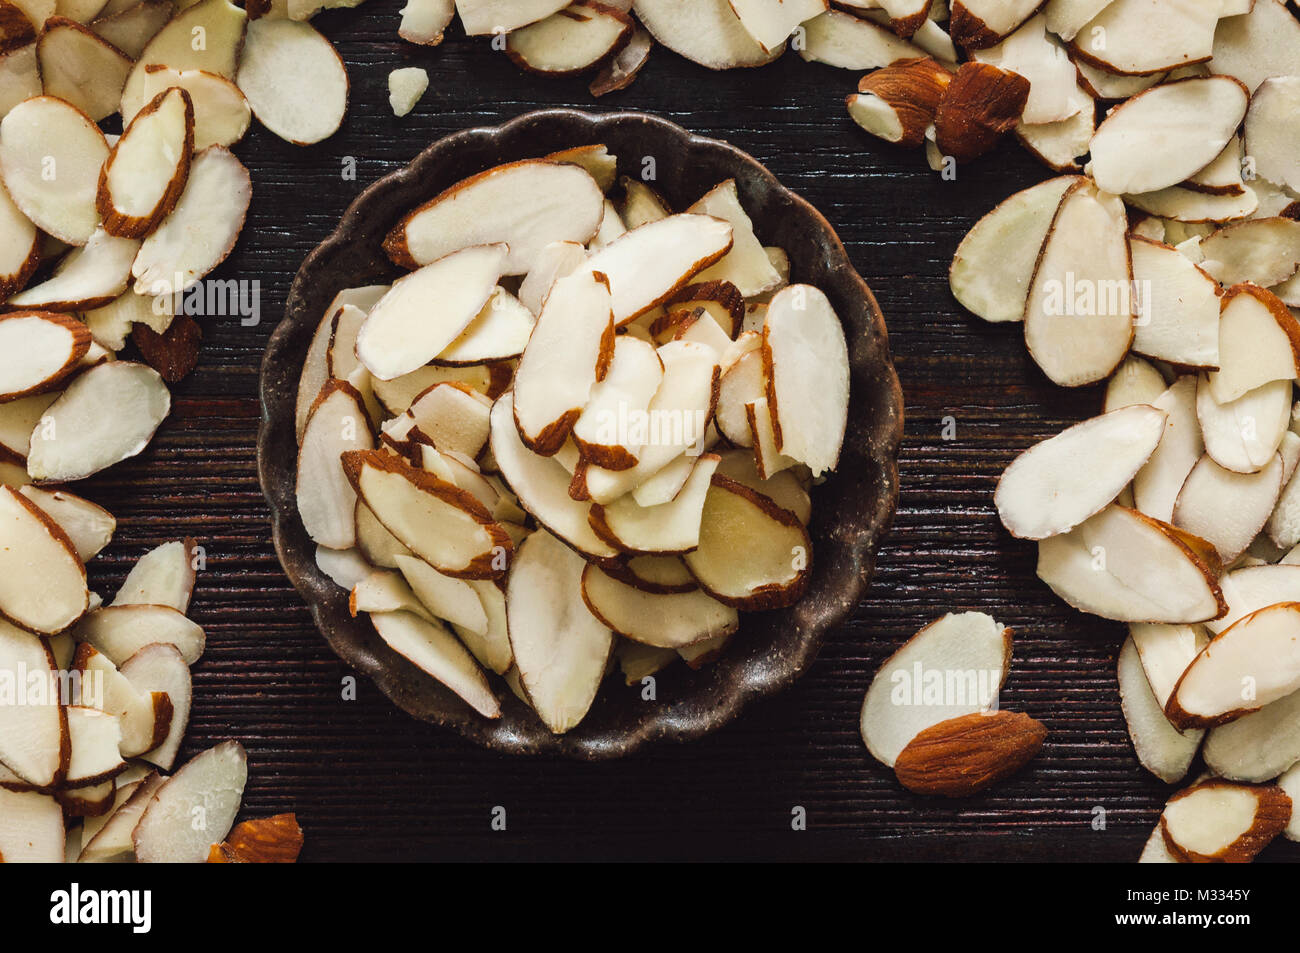 Sliced Raw Almonds Arranged on Dark Table - Stock Image